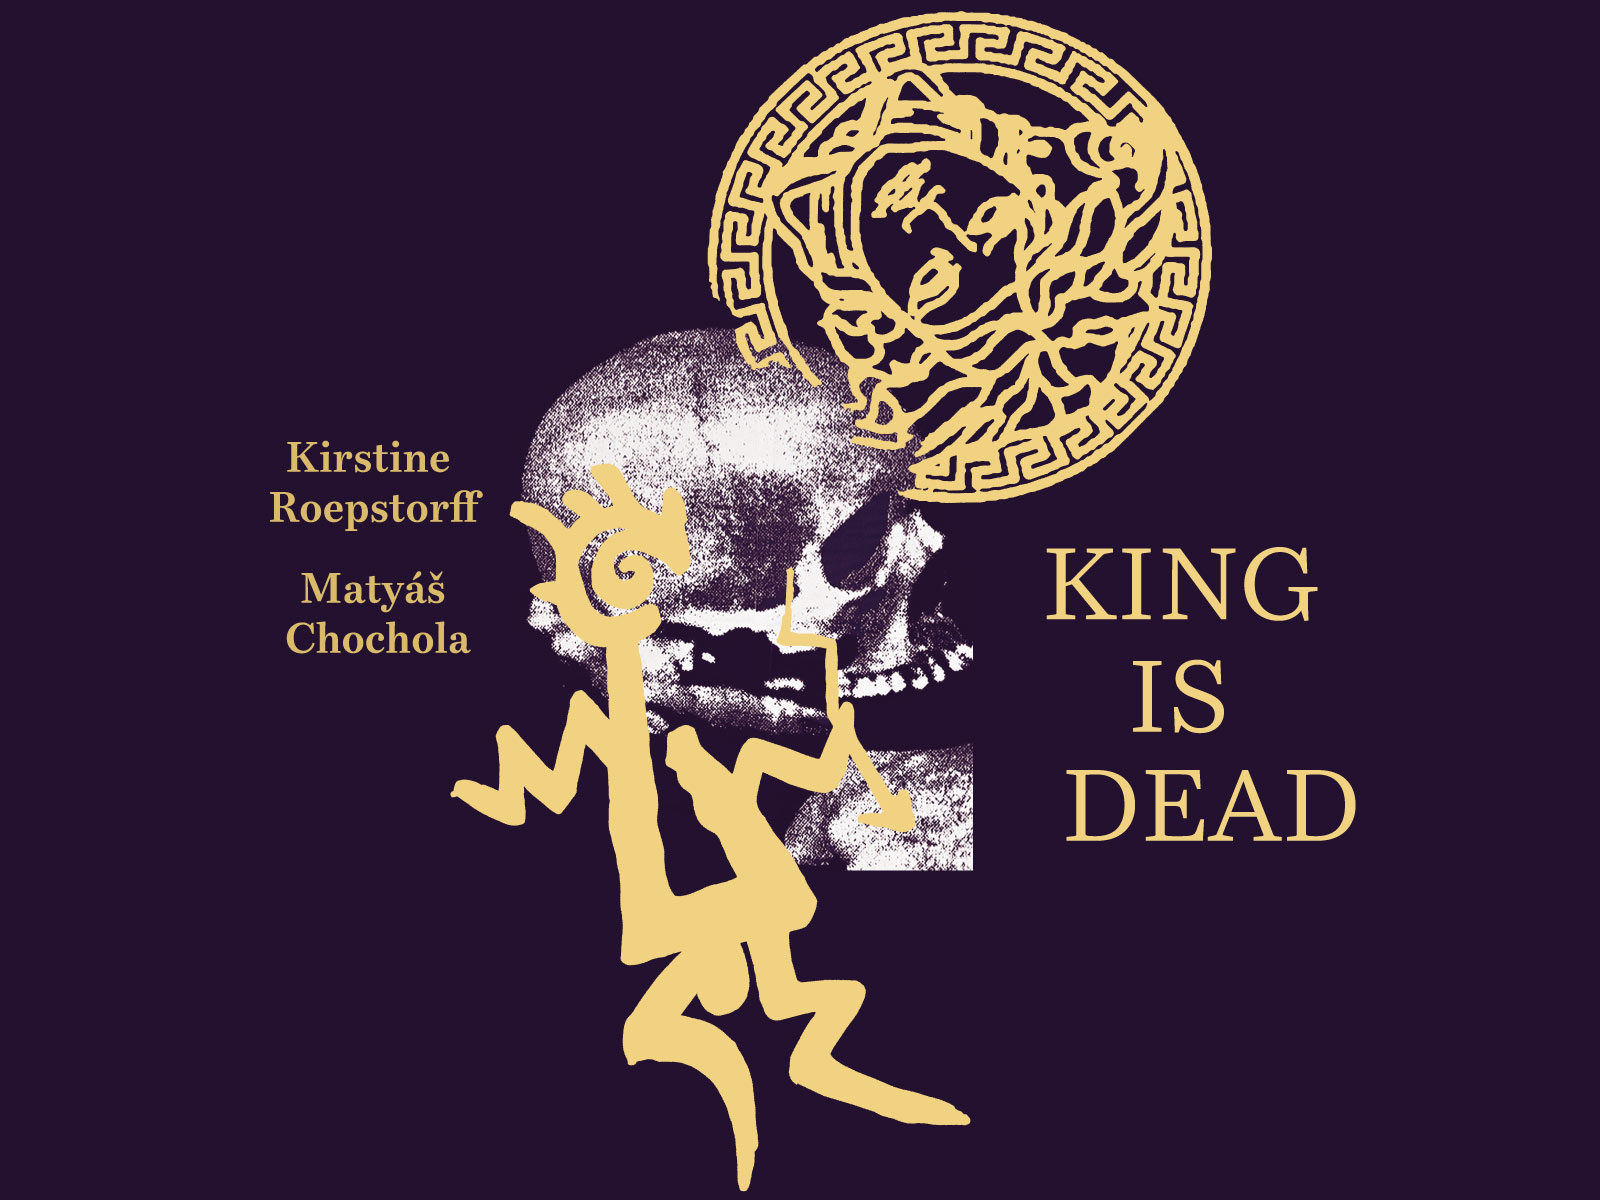 Kirstine Roepstorff / Matyas Chochola: King Is Dead from 7. 6. 2019